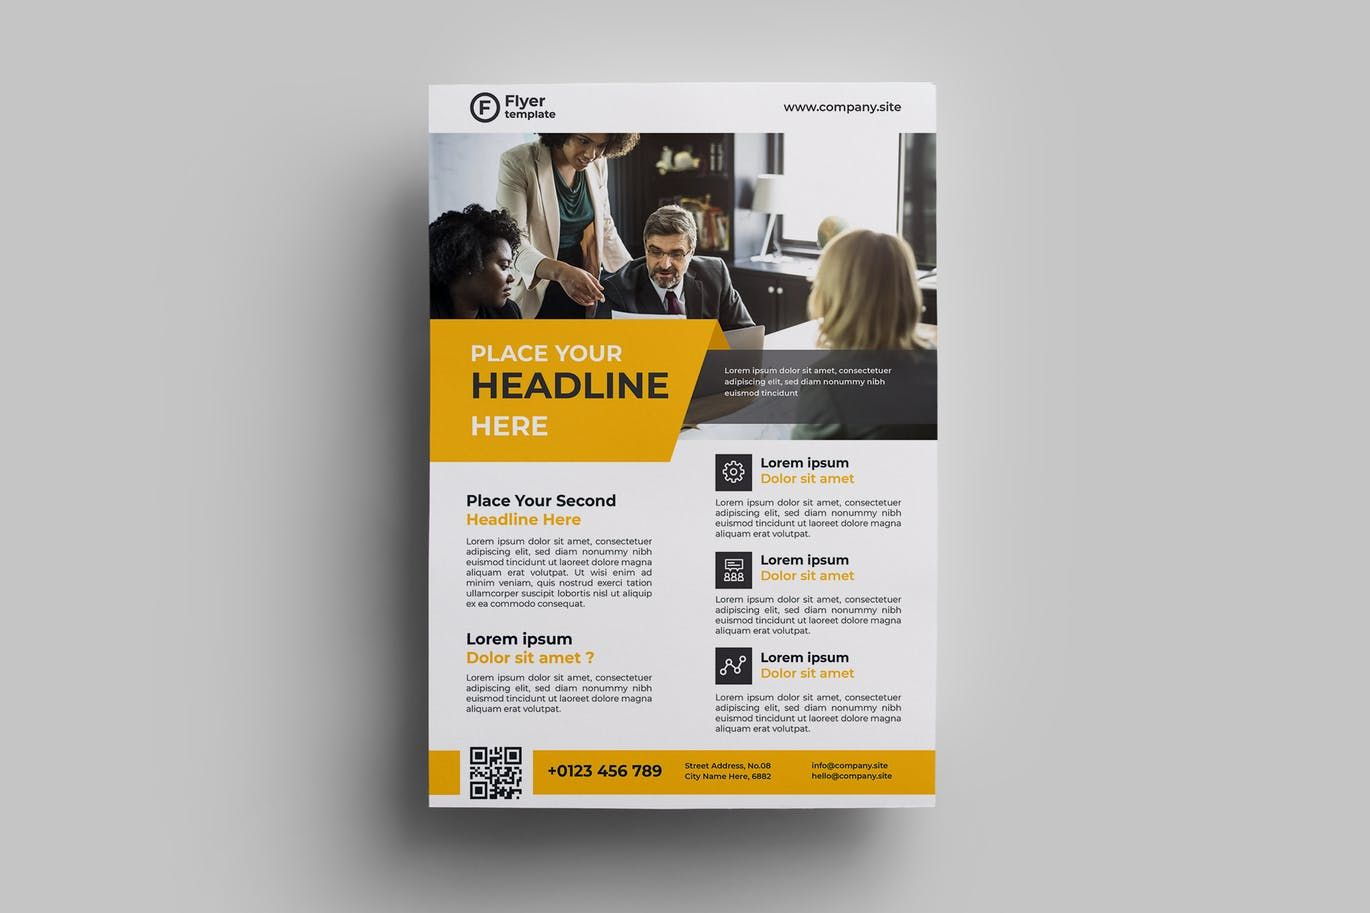 Corporate Flyer Design 03 By Adilbudianto On Envato Elements Corporate Flyer Business Flyer Flyer